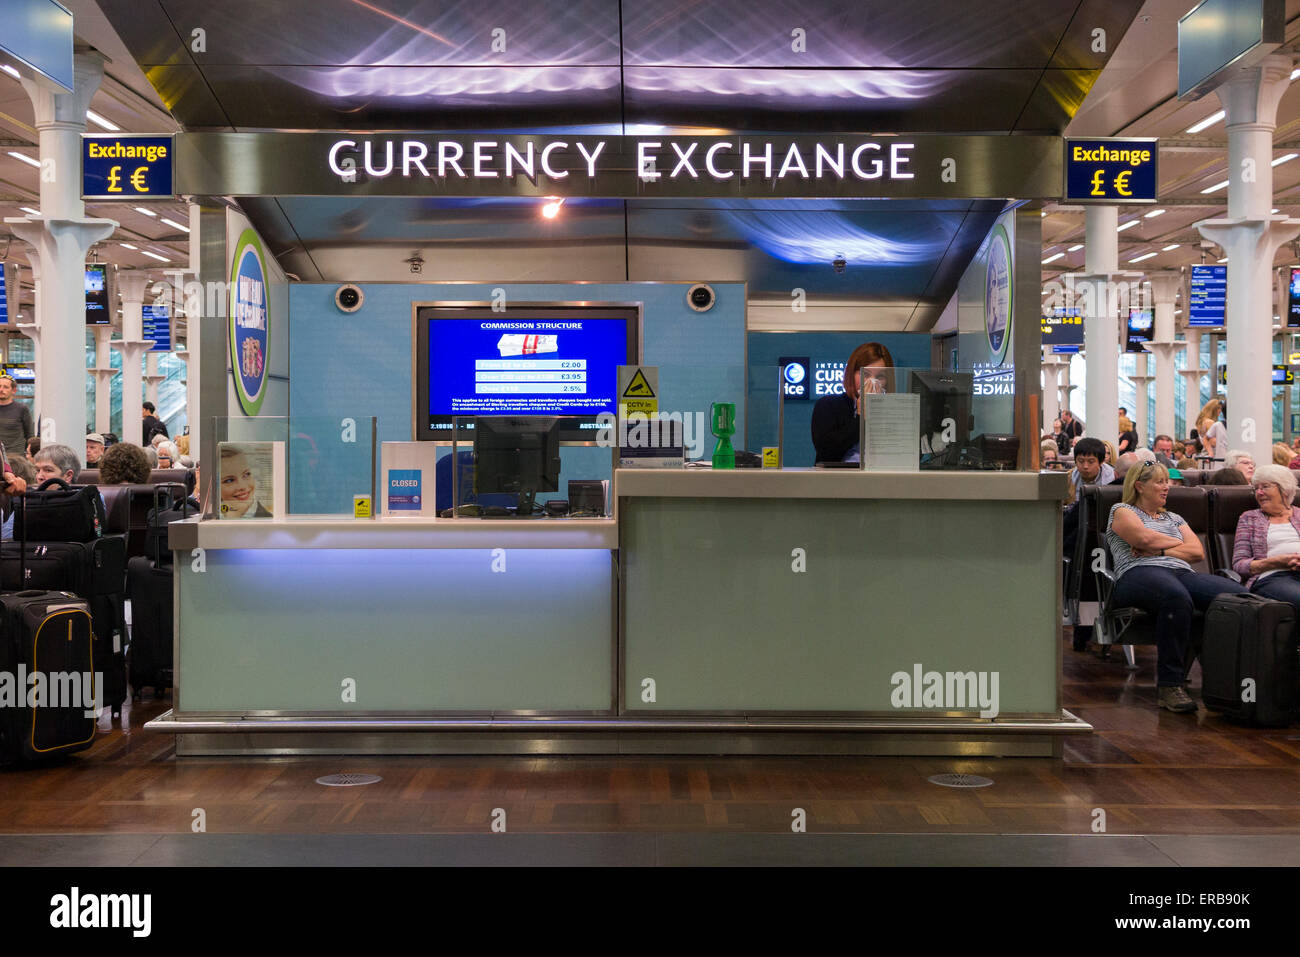 ice bureau de change international currency exchange in the stock photo 83227107 alamy. Black Bedroom Furniture Sets. Home Design Ideas